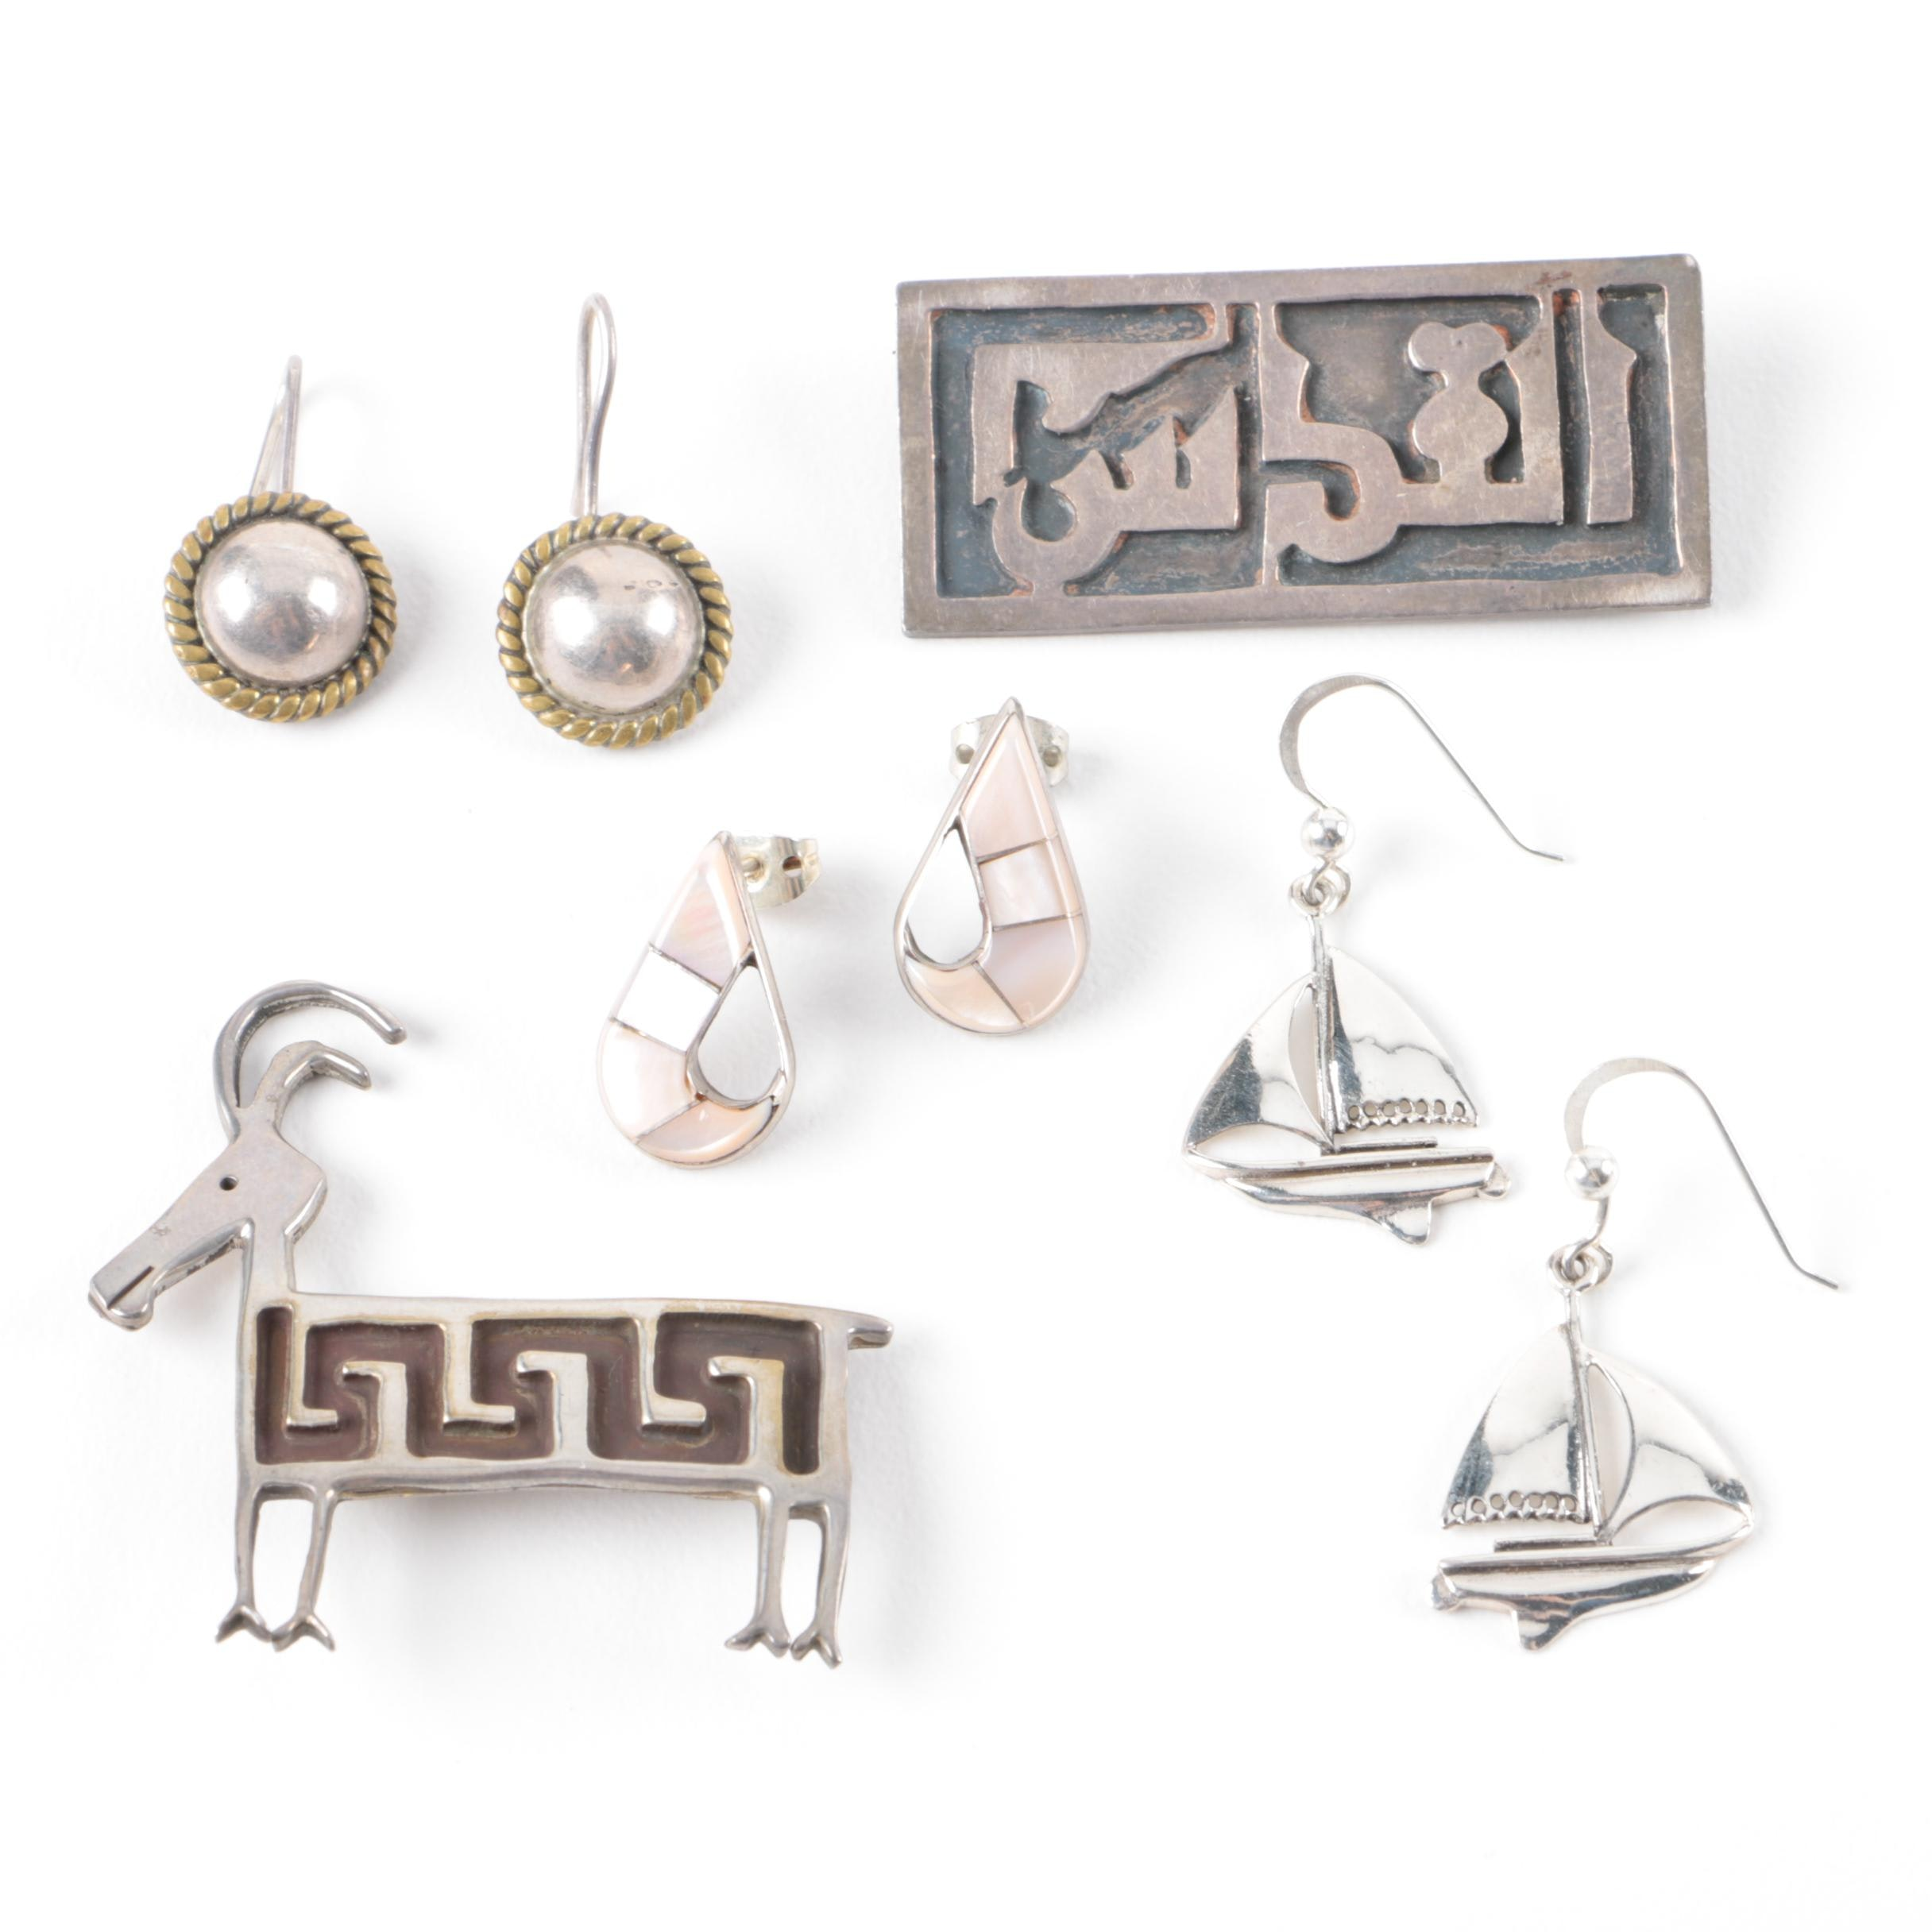 Sterling Silver Brooches and Earrings Including A. Stanetzky